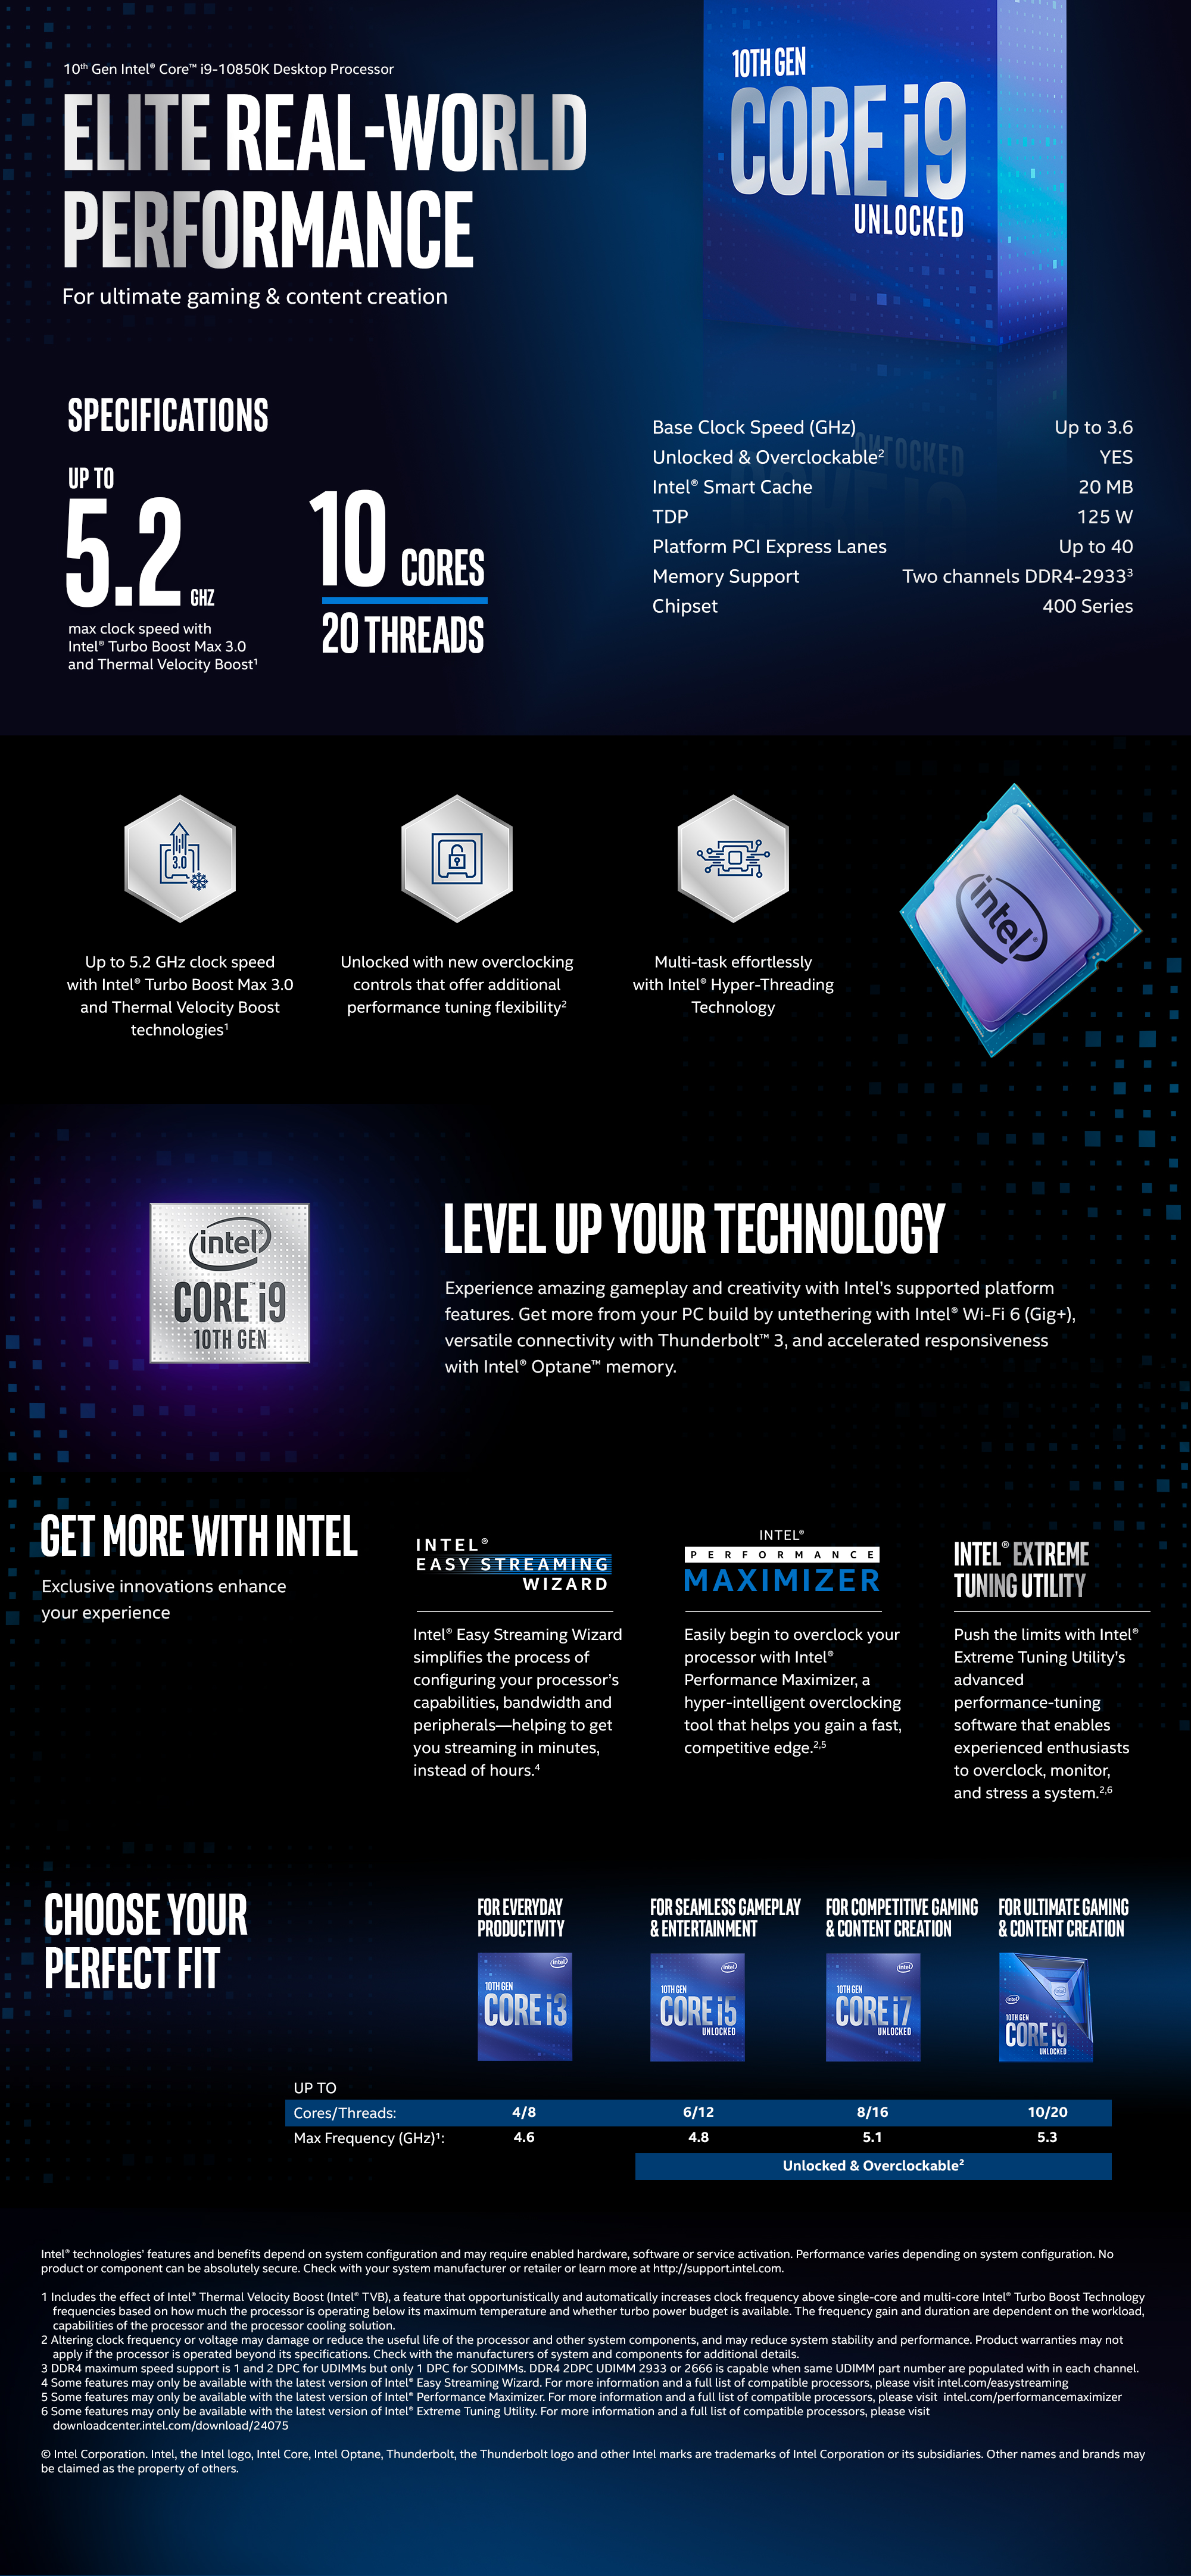 A large marketing image providing additional information about the product Intel Core i9 10850K 3.6Ghz Comet Lake 10 Core 20 Thread LGA1200 - No HSF Retail Box - Additional alt info not provided